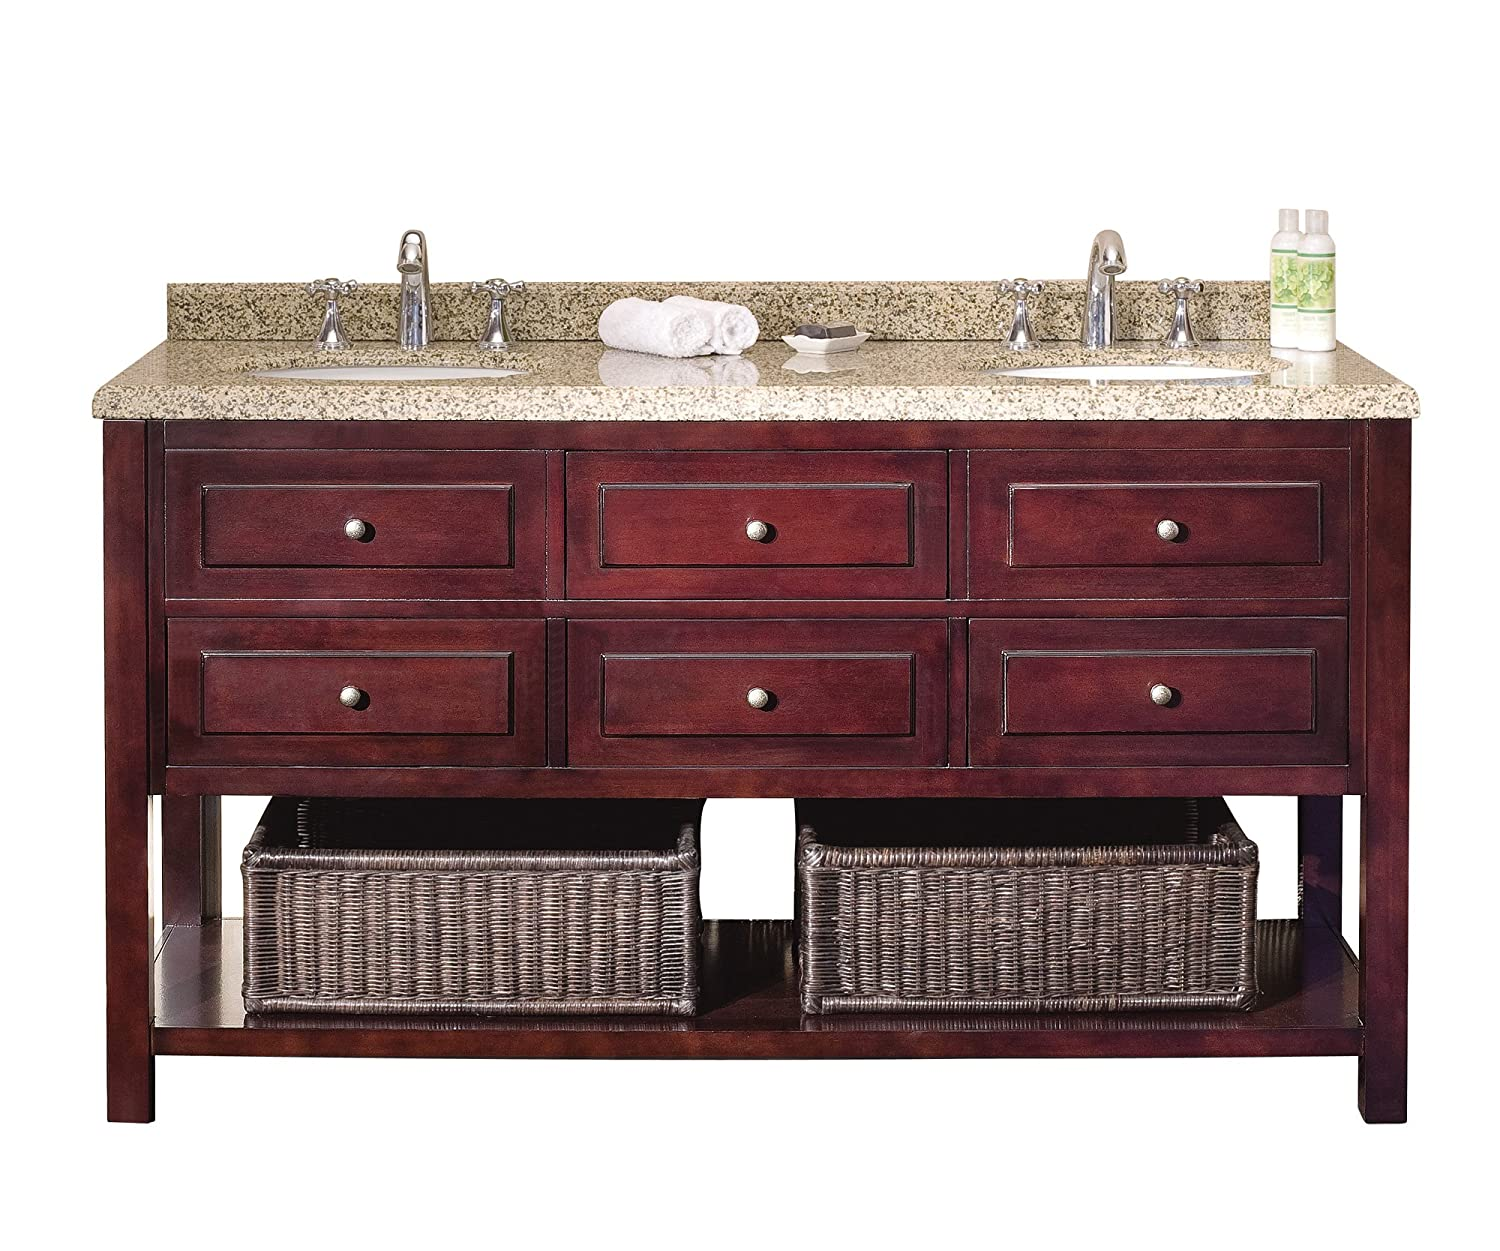 Double Vanity.Ove Decors Danny 60 Bathroom Double Vanity With Brown Peppered Granite Countertop And Two Undermount Ceramic Basins Warm Chocolate 60 Inch